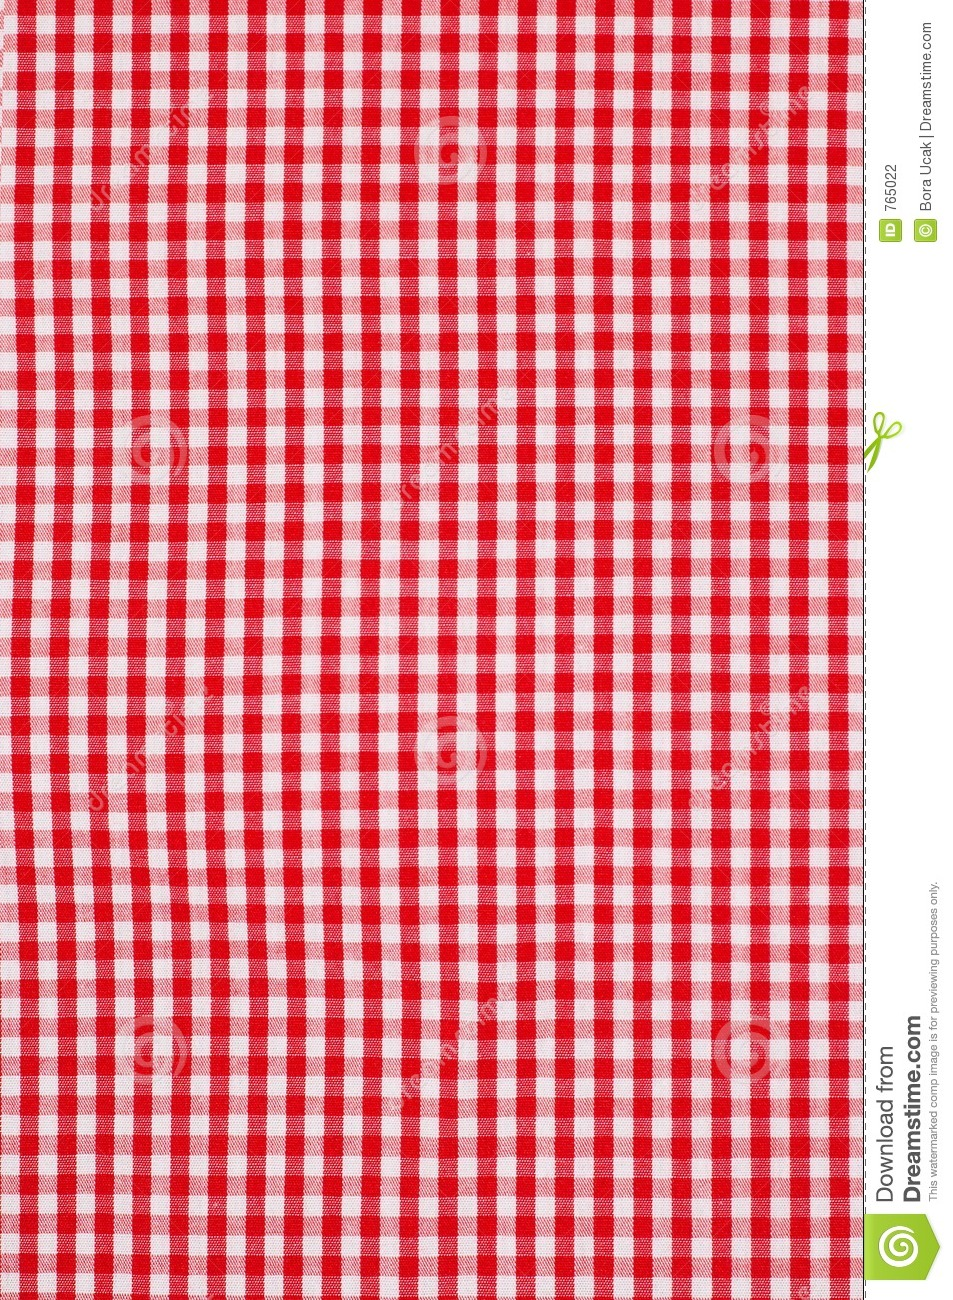 Table cloth stock photo. Image of bright, line, color ...